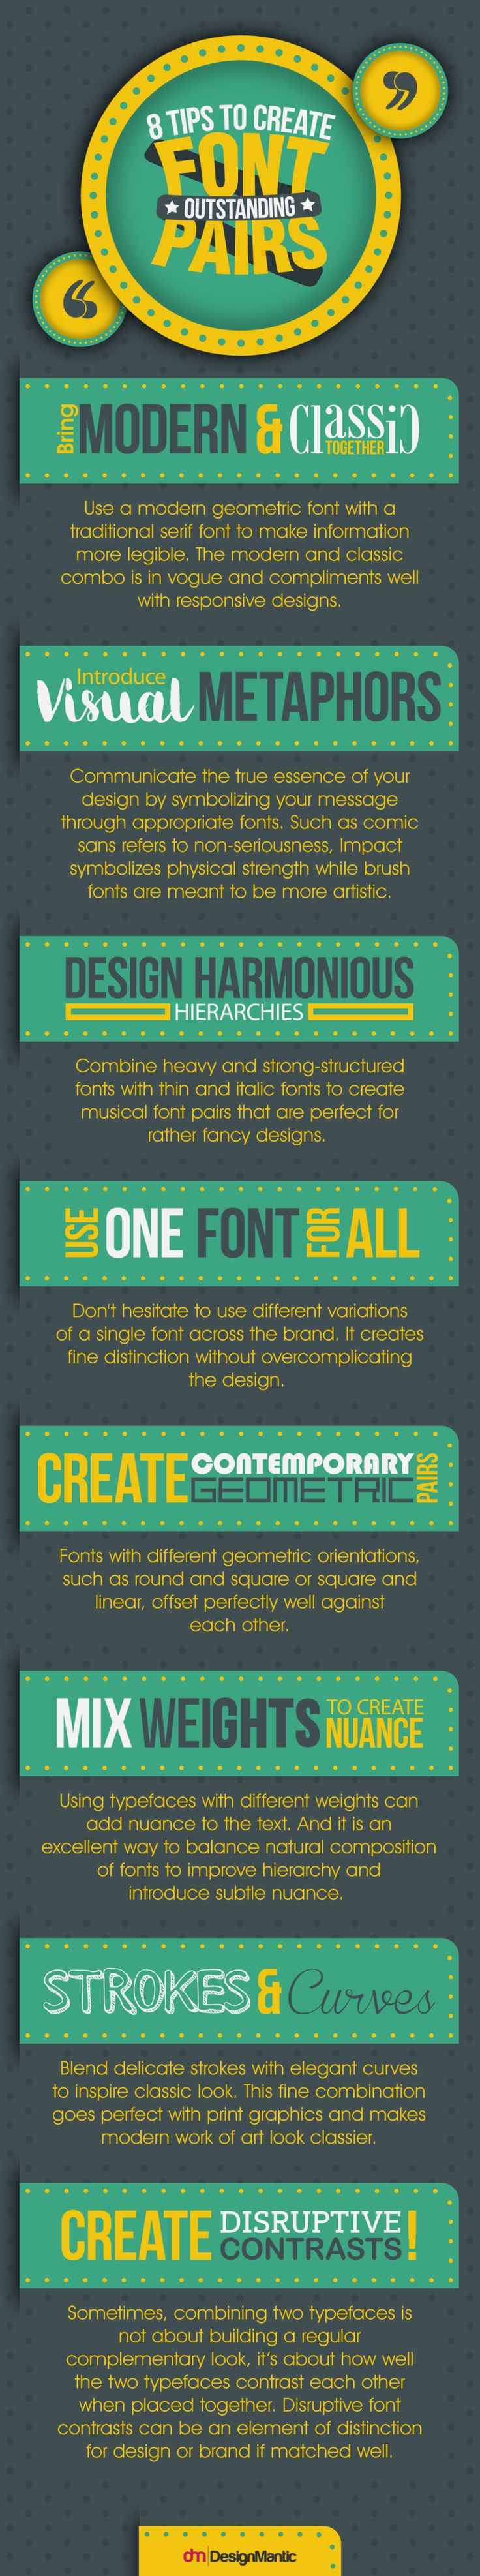 This Graphic Shows How to Pair Multiple Fonts Together For Better Designs #noodlenook